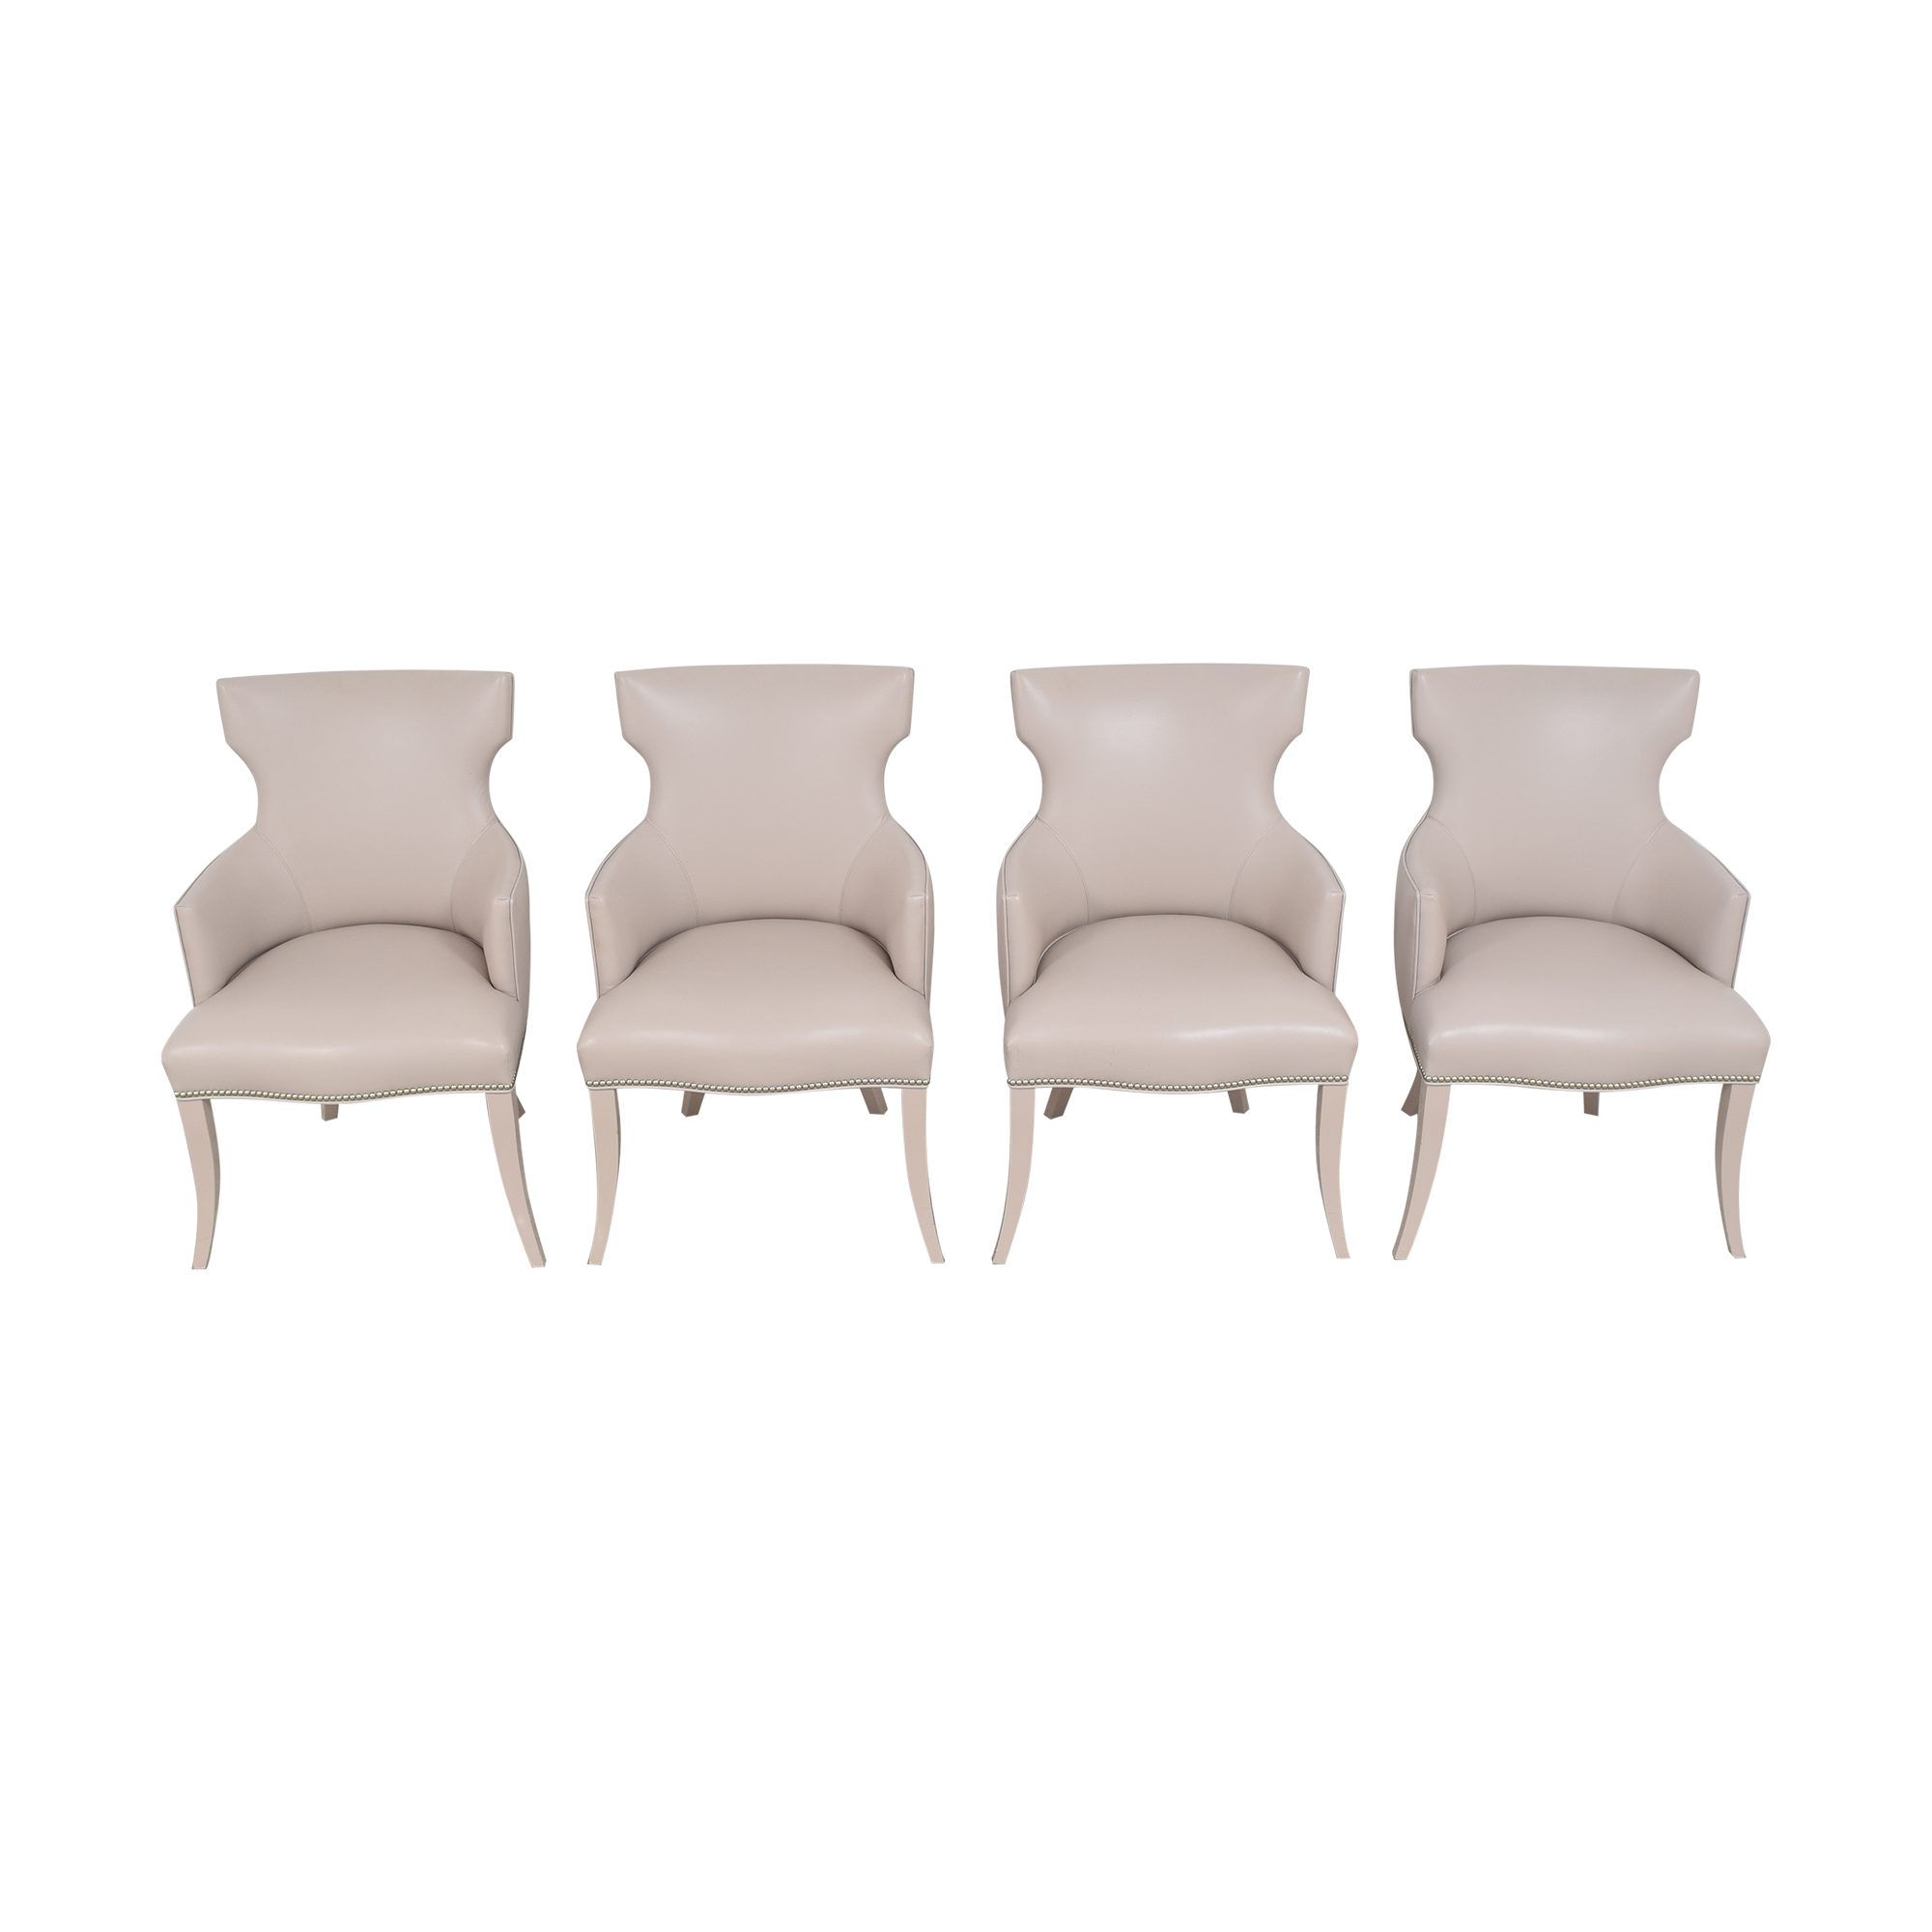 Artistic Frame Artistic Frame Custom Wing Back Dining Chairs for sale